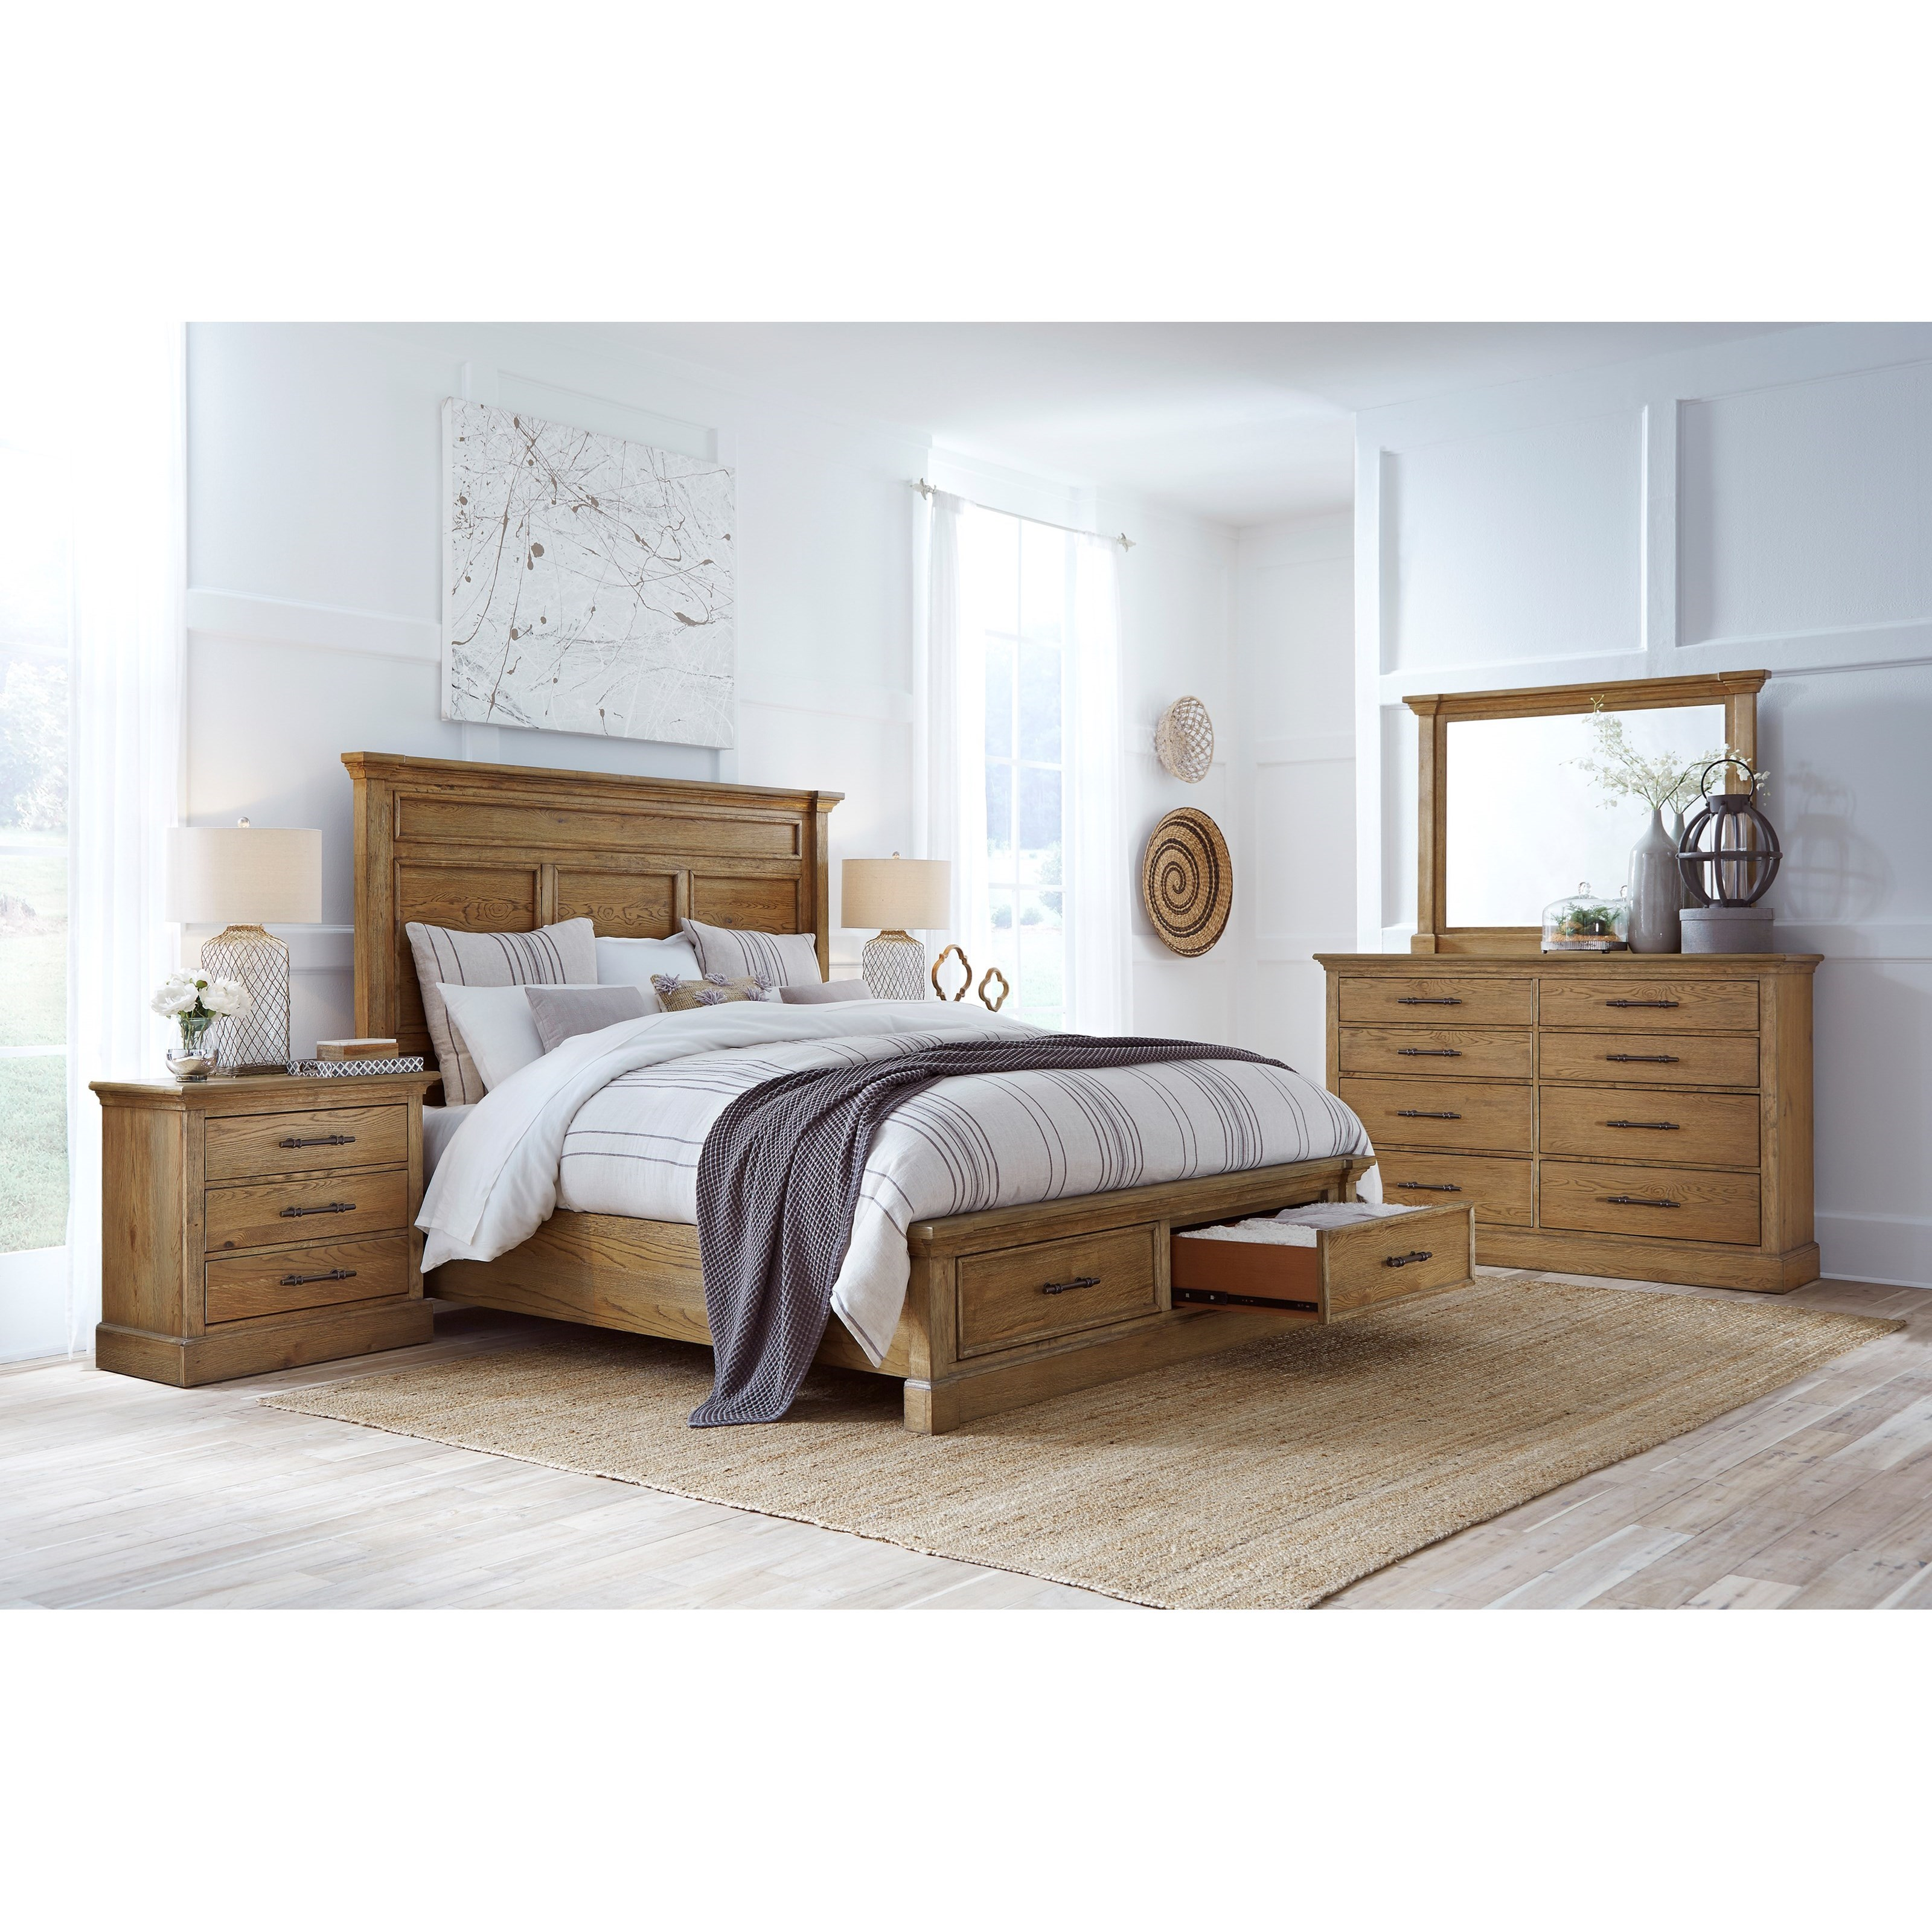 Manchester King Bedroom Group by Aspenhome at Baer's Furniture